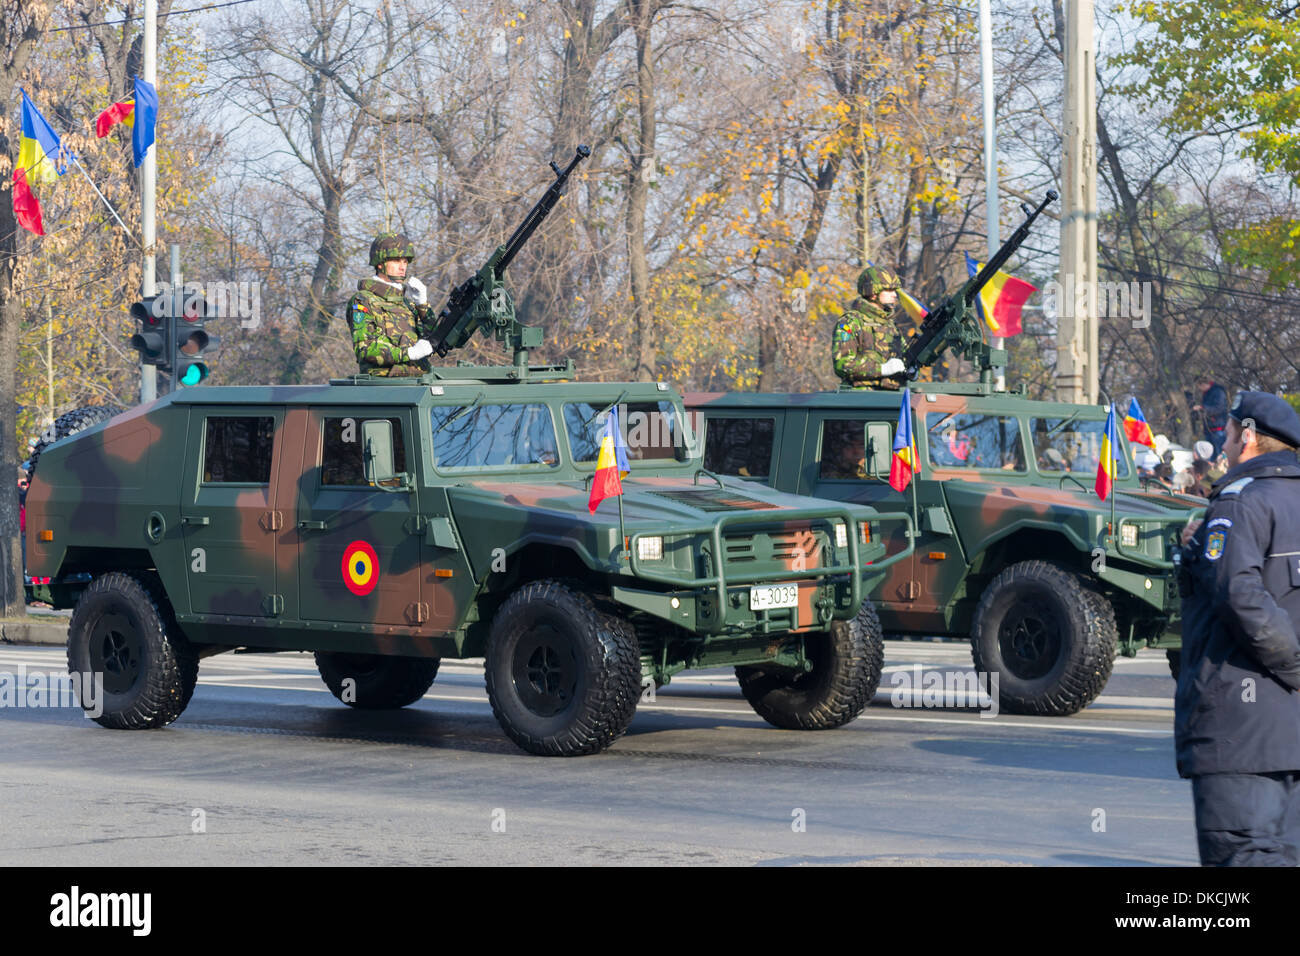 URO VAMTAC armoured fighting vehicles - December 1st, Parade on Romania's National Day - Stock Image